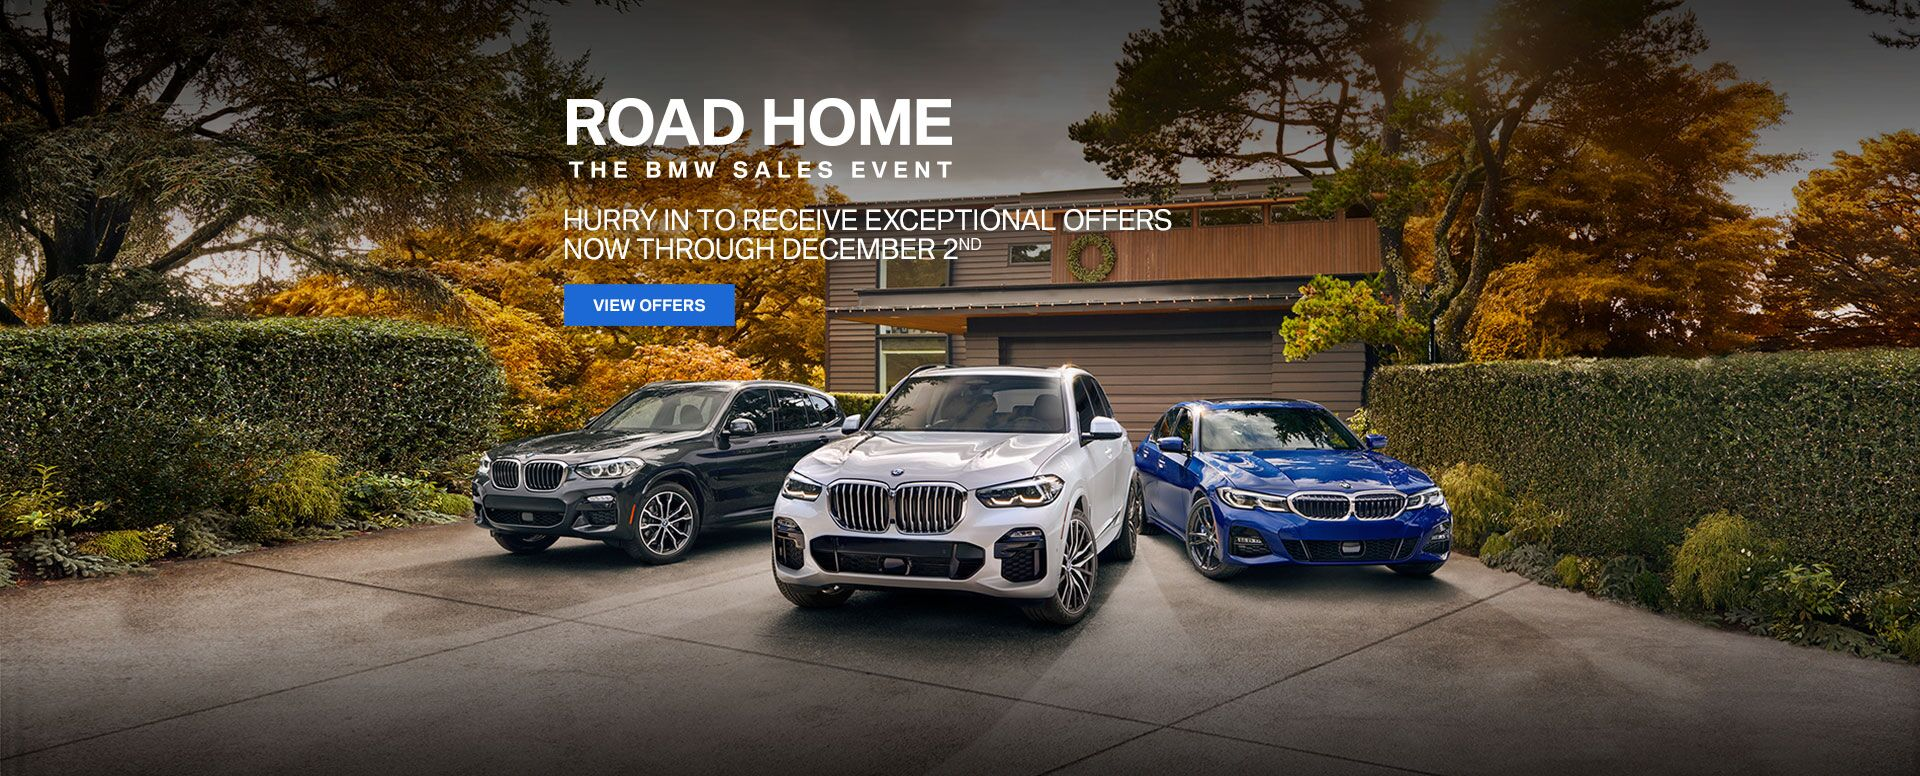 BMW Road Home Event